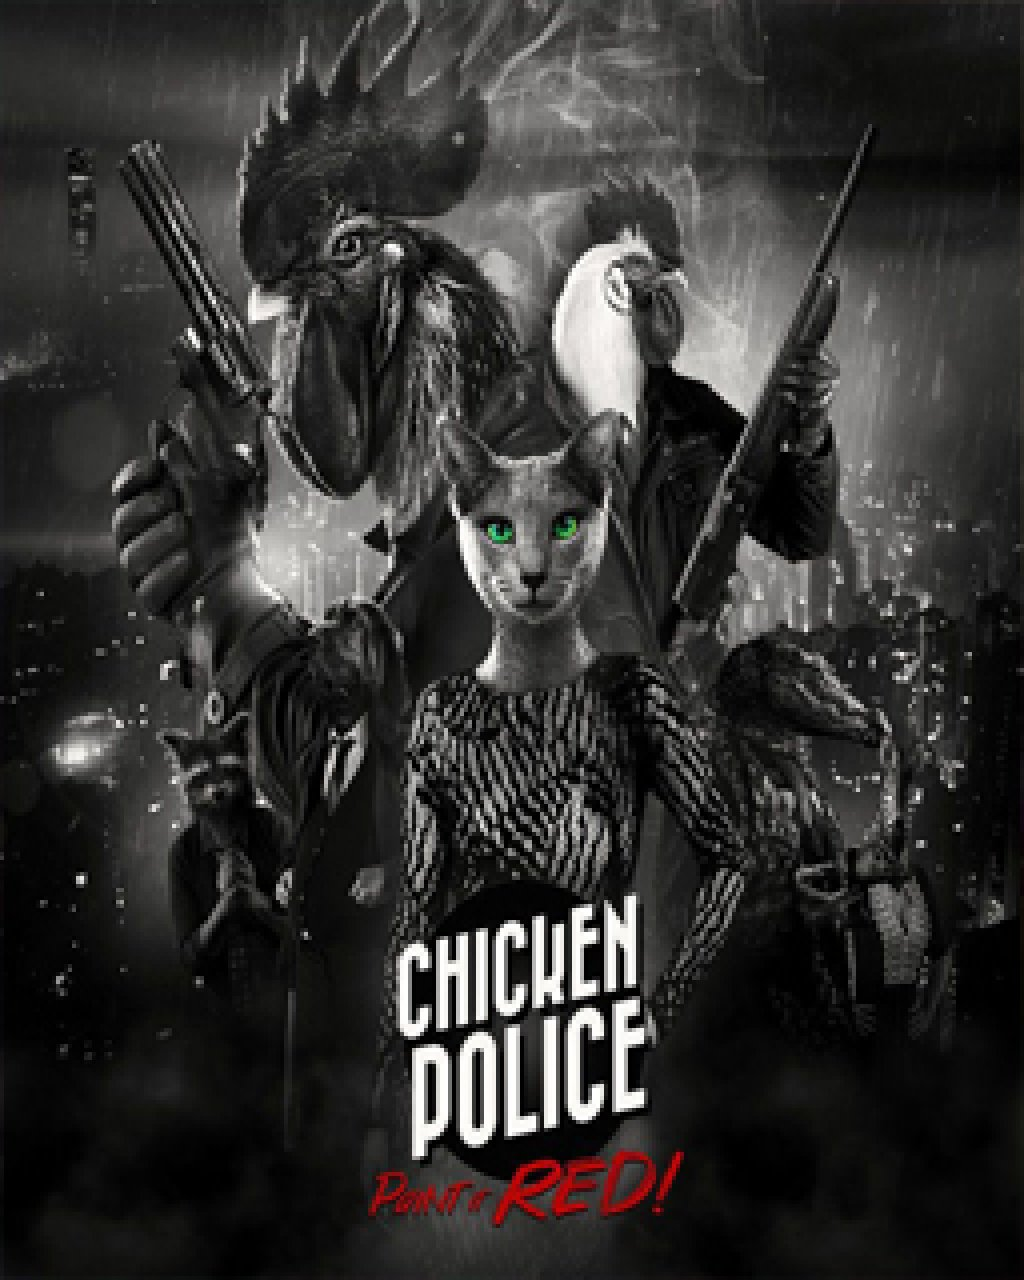 Chicken Police Paint it RED!